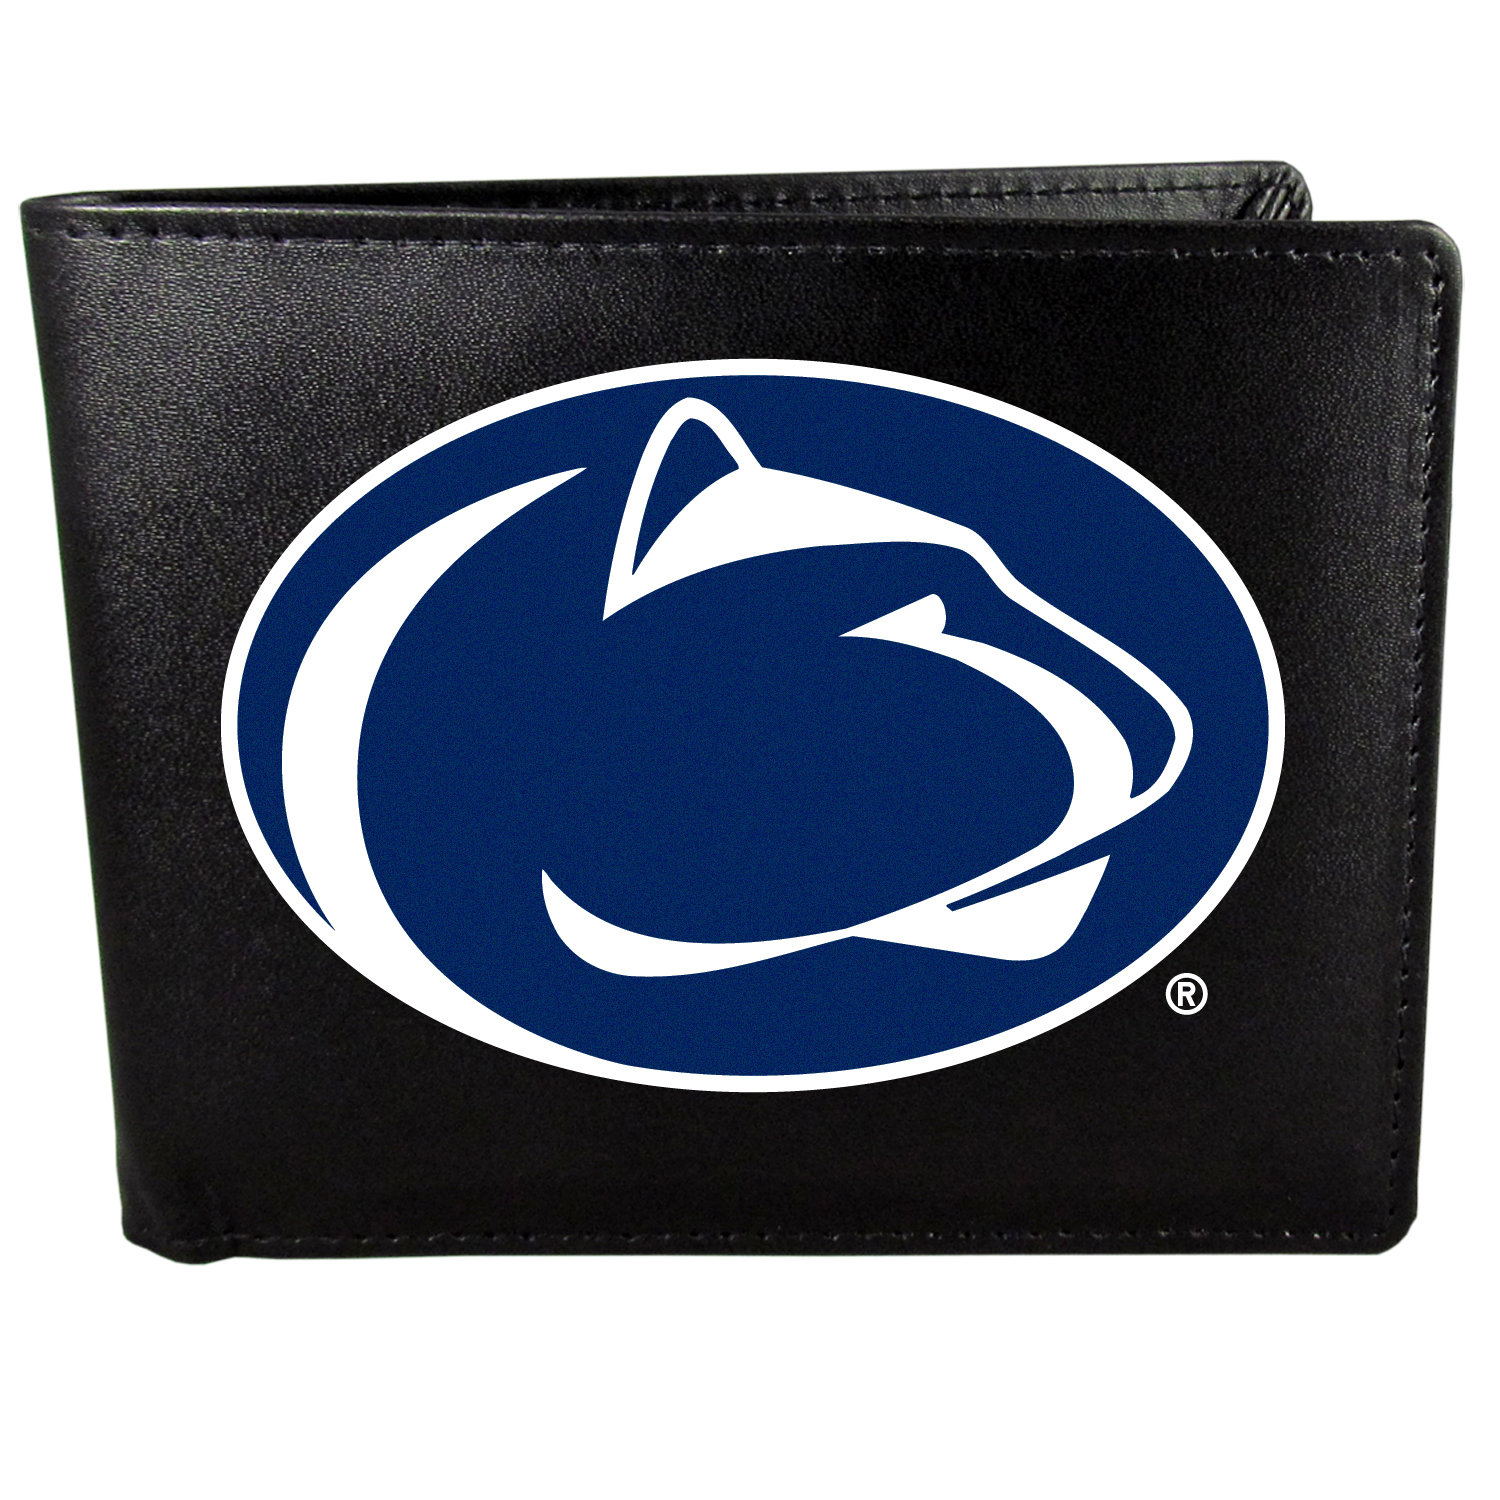 Penn St. Nittany Lions Bi-fold Wallet Large Logo - Sports fans do not have to sacrifice style with this classic bi-fold wallet that sports the Penn St. Nittany Lions extra large logo. This men's fashion accessory has a leather grain look and expert craftmanship for a quality wallet at a great price. The wallet features inner credit card slots, windowed ID slot and a large billfold pocket. The front of the wallet features a printed team logo.